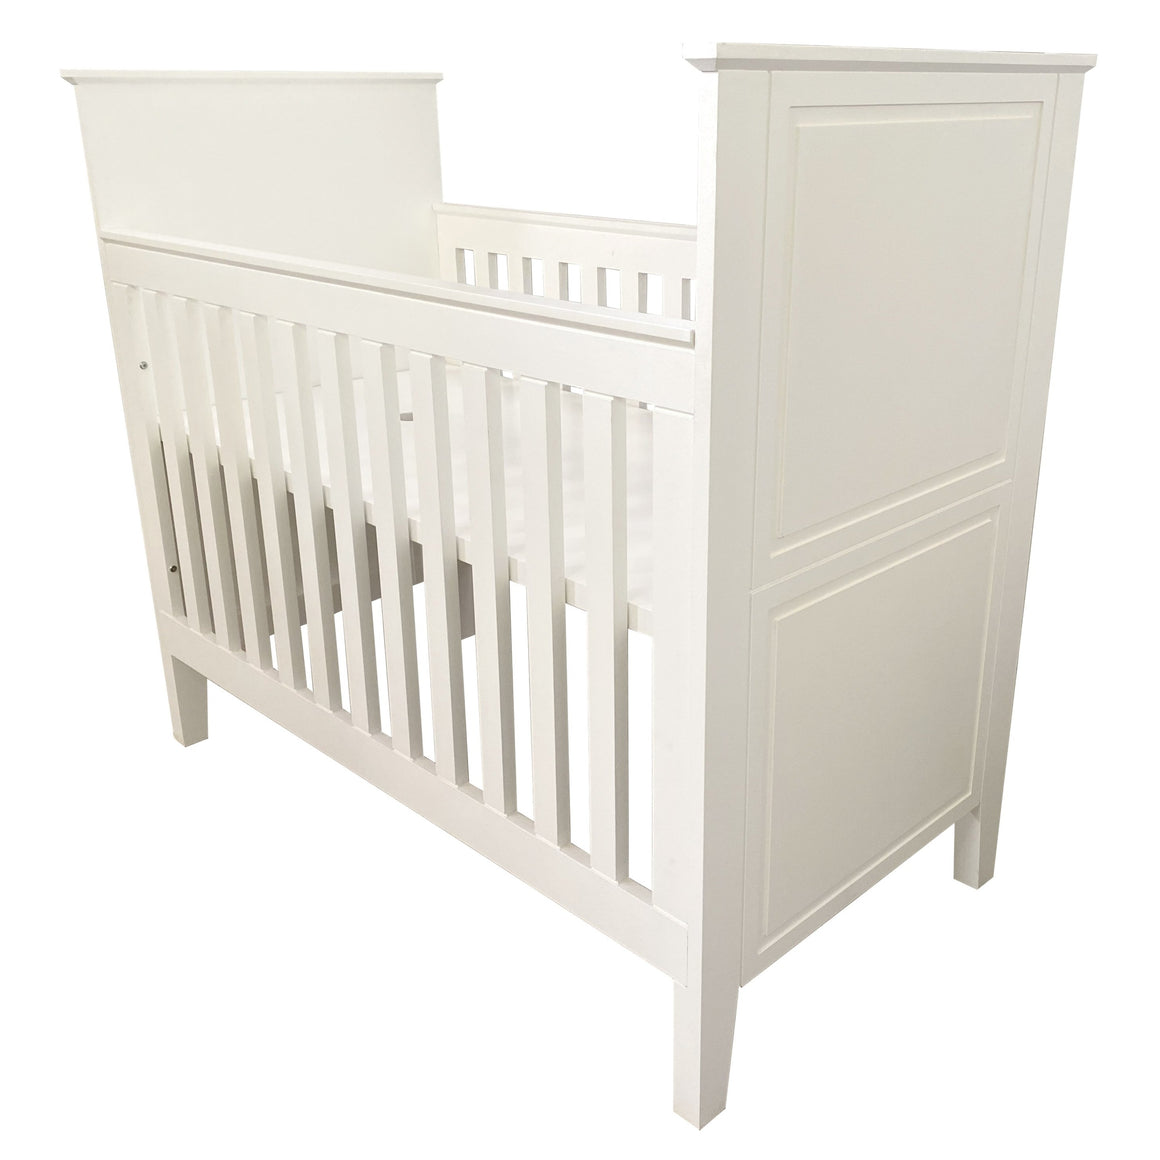 Razberry Kids - Alex Baby Cot